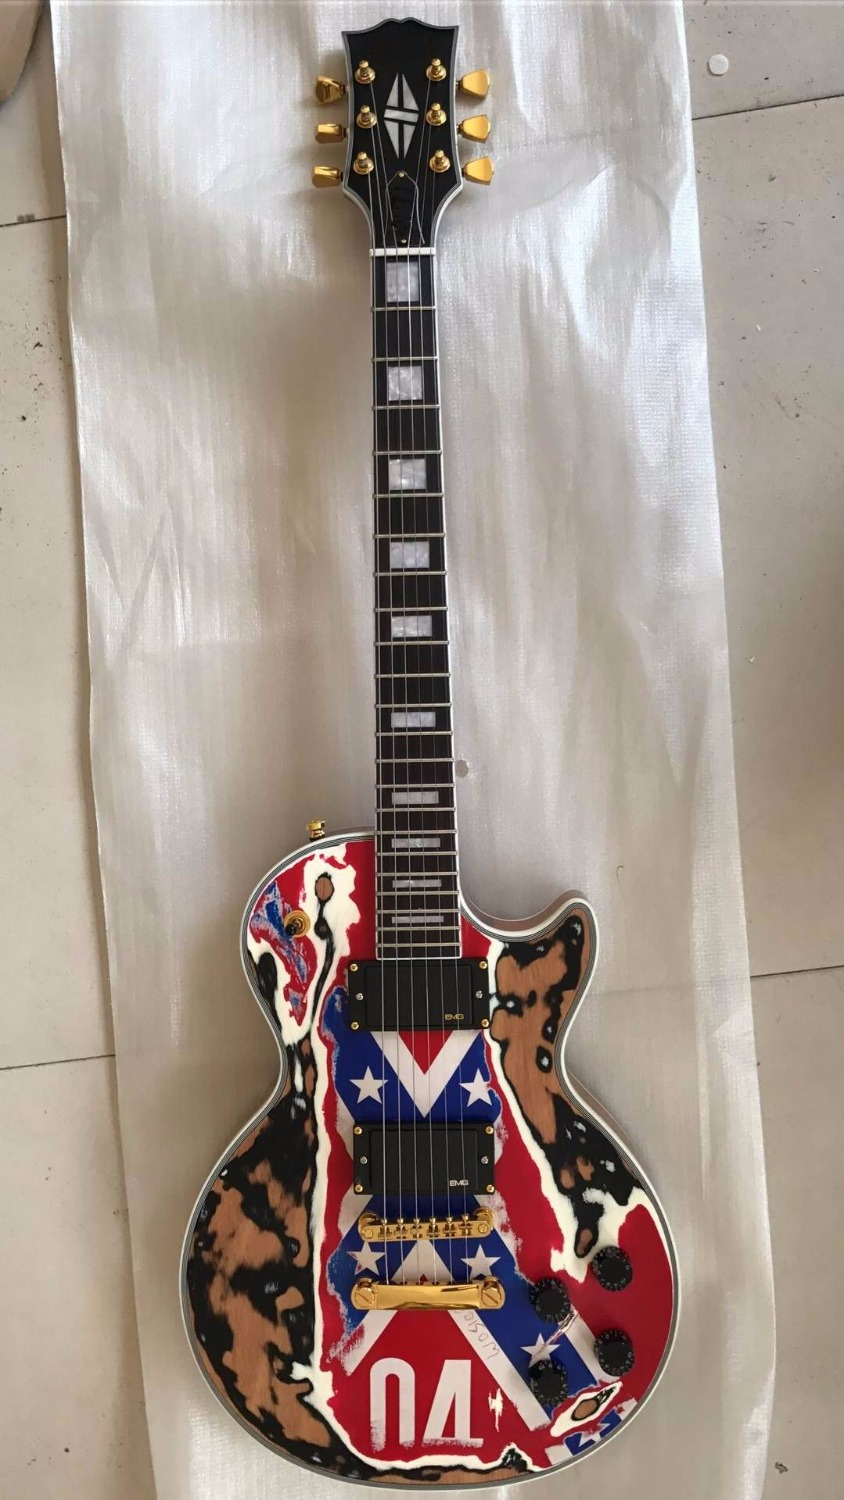 Wholesale Cheap Guitar New Cibson LP Custom China Electric Guitar Mahogany Body/Neck Flag Body 170909 china oem firehawk guitar wholesale custom shop sg electric guitar a piece wood of the neck electric guitar